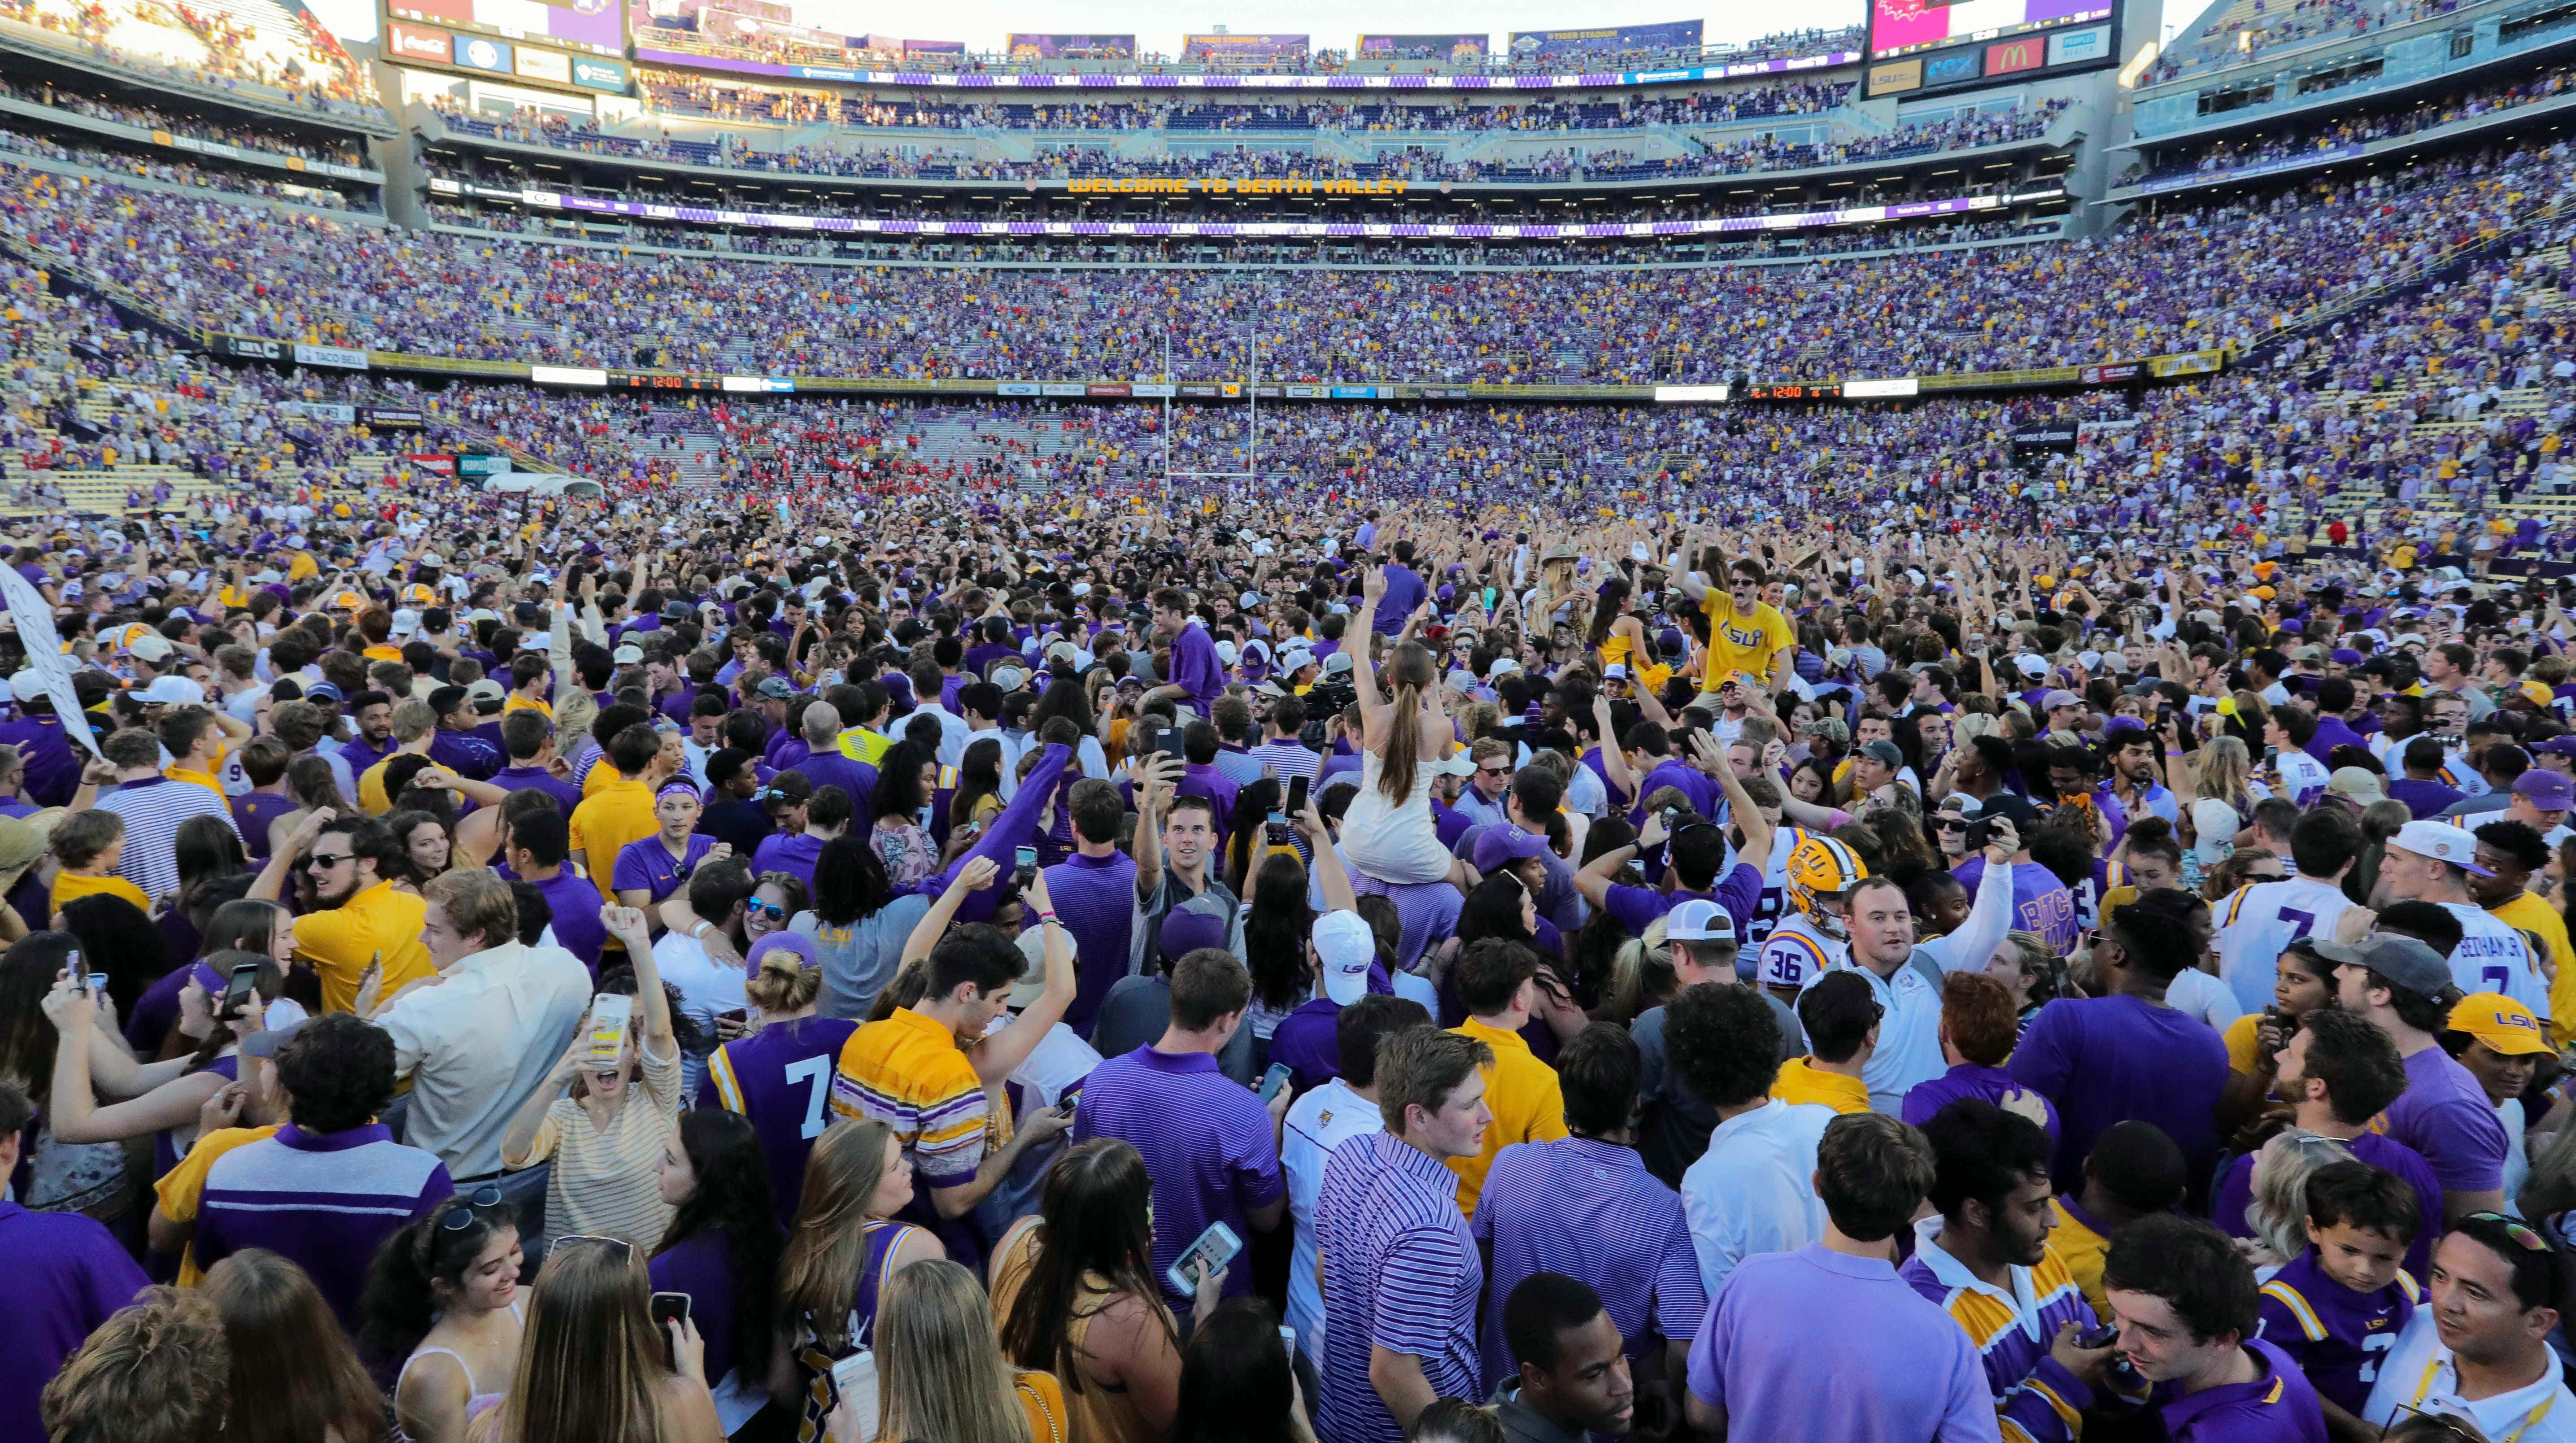 LSU Tigers fans rush the field after the win against the Georgia Bulldogs at Tiger Stadium.